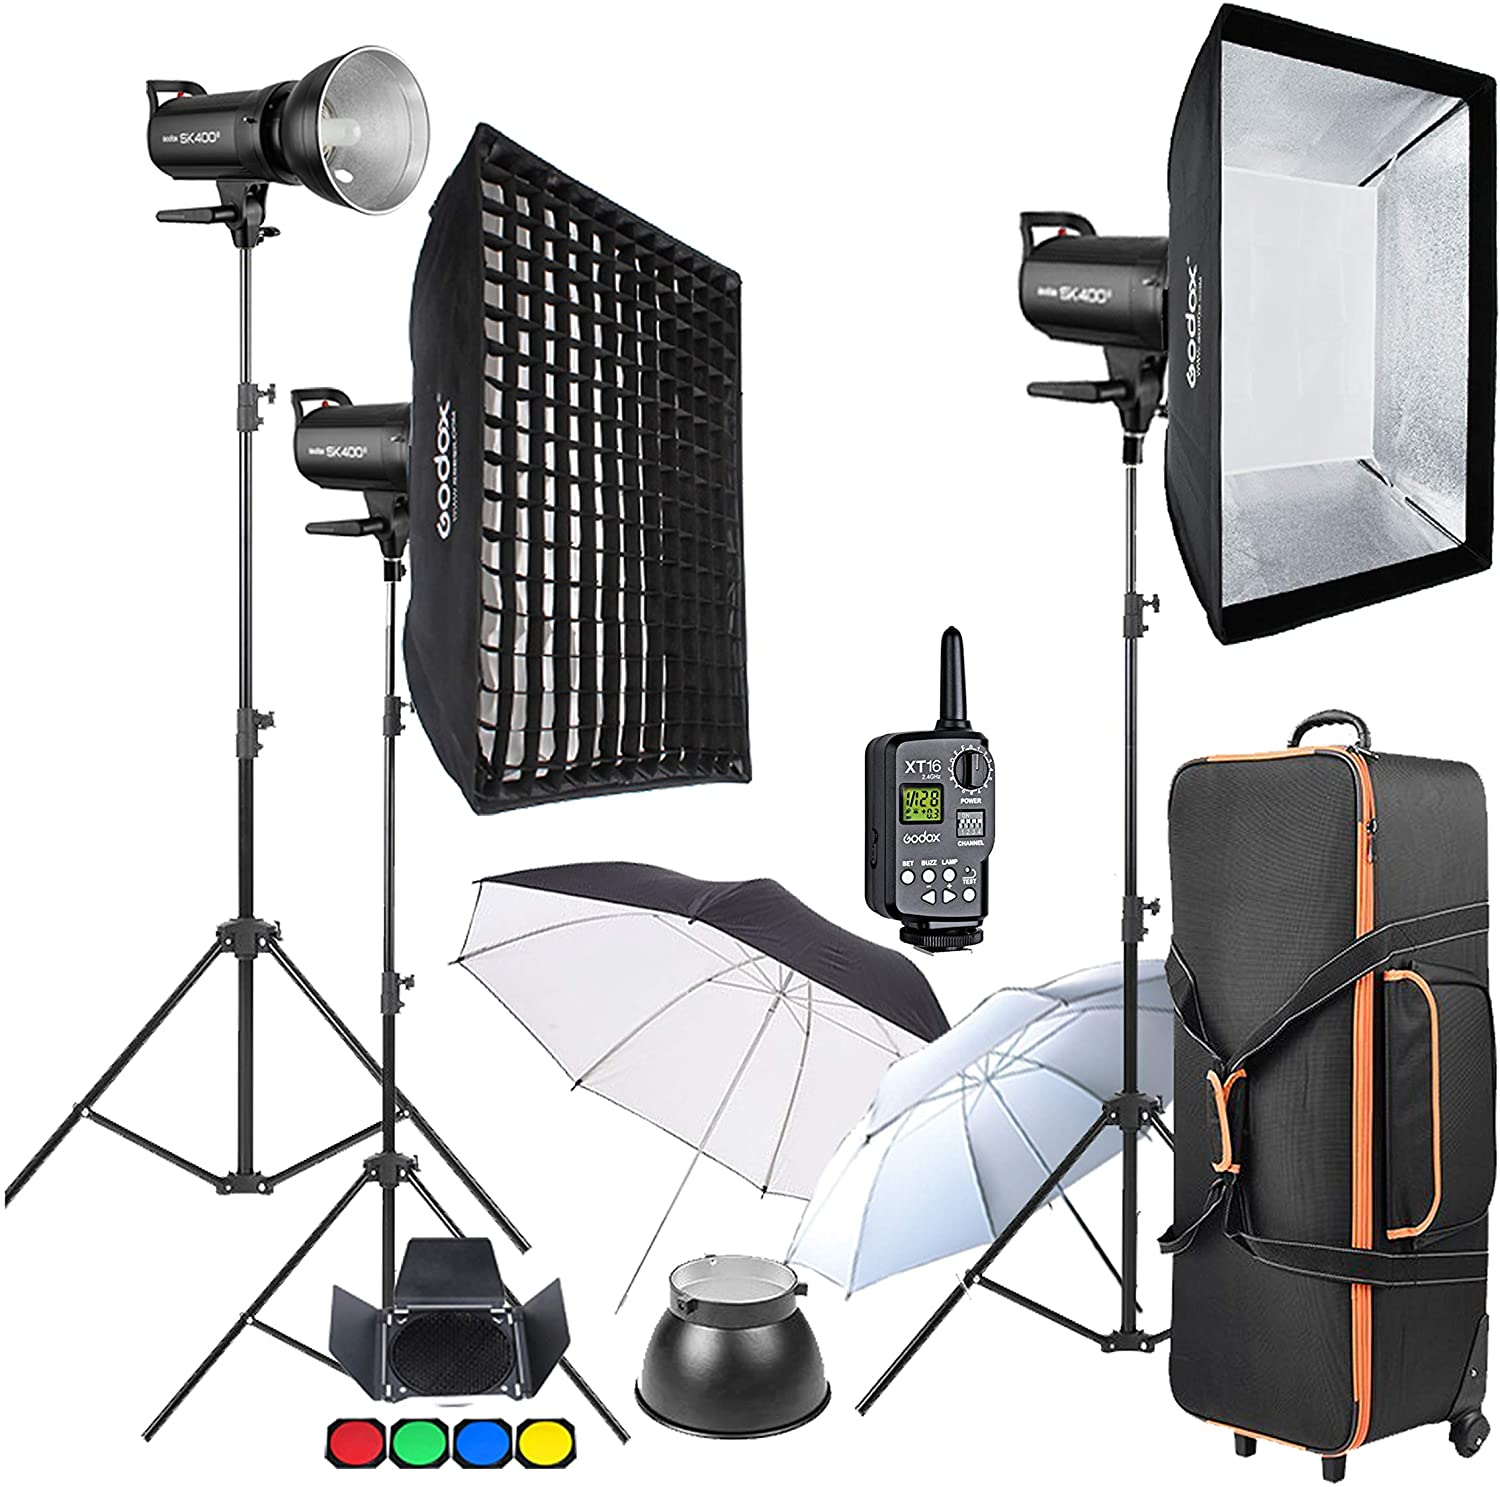 Umbrella Barn Door Carrying Case Accessory Kits Wireless Trigger GODOX SK400II 3 x 400Ws 2.4G Bowens Mount Strobe Flash Kits for Photography Lighting Portrait Photography Softbox Light Stands